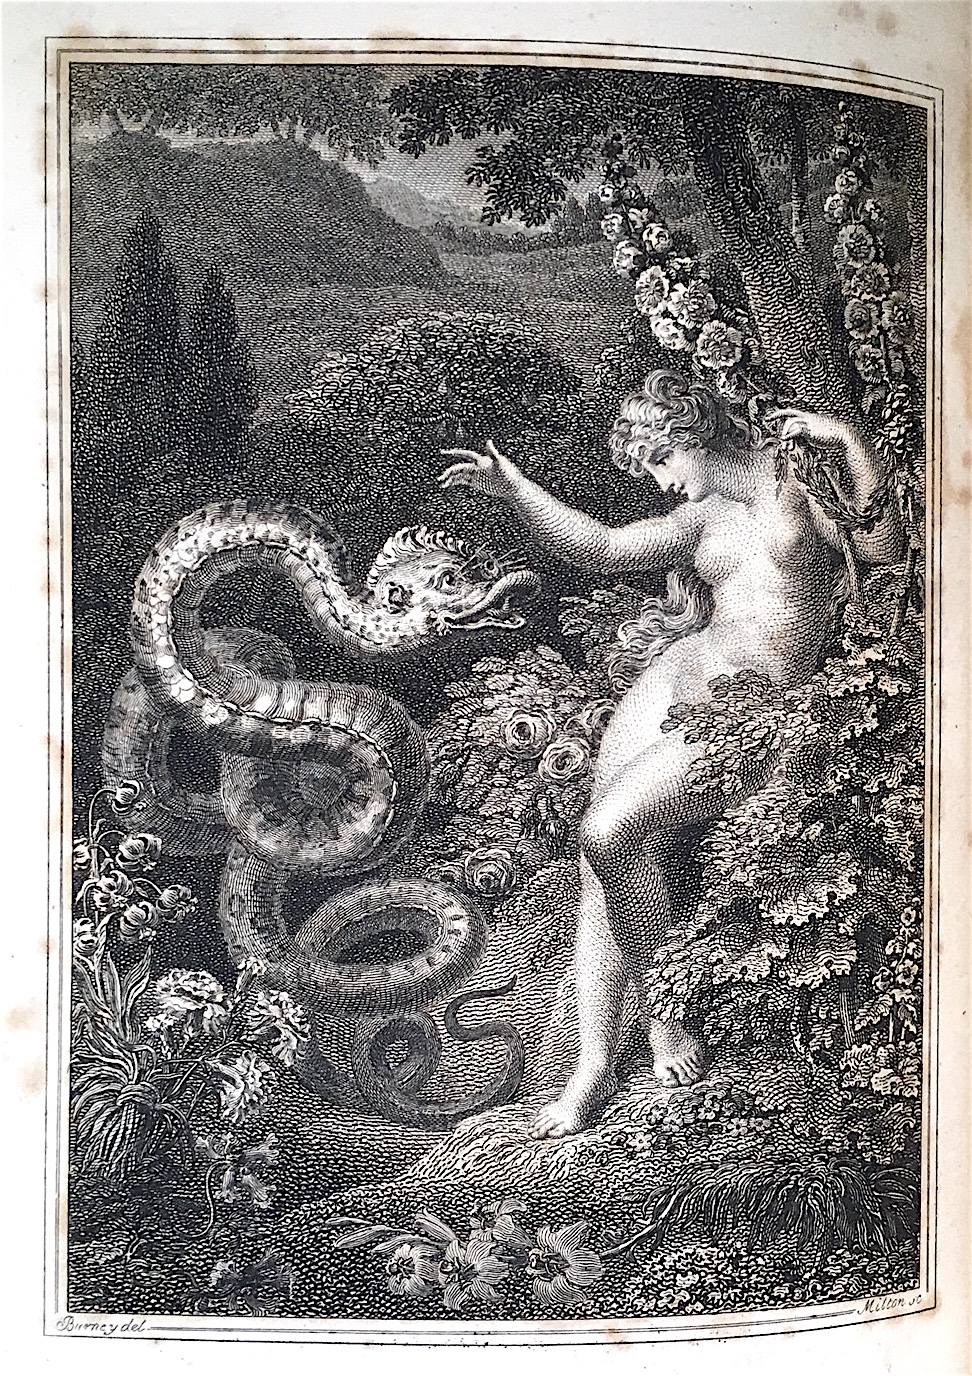 MILTON'S PARADISE LOST, WITH THE LIFE OF THE AUTHOR TO WHICH IS PREFIXED THE CELEBRATED CRITIQUE BY SAM JOHNSON. John Milton.